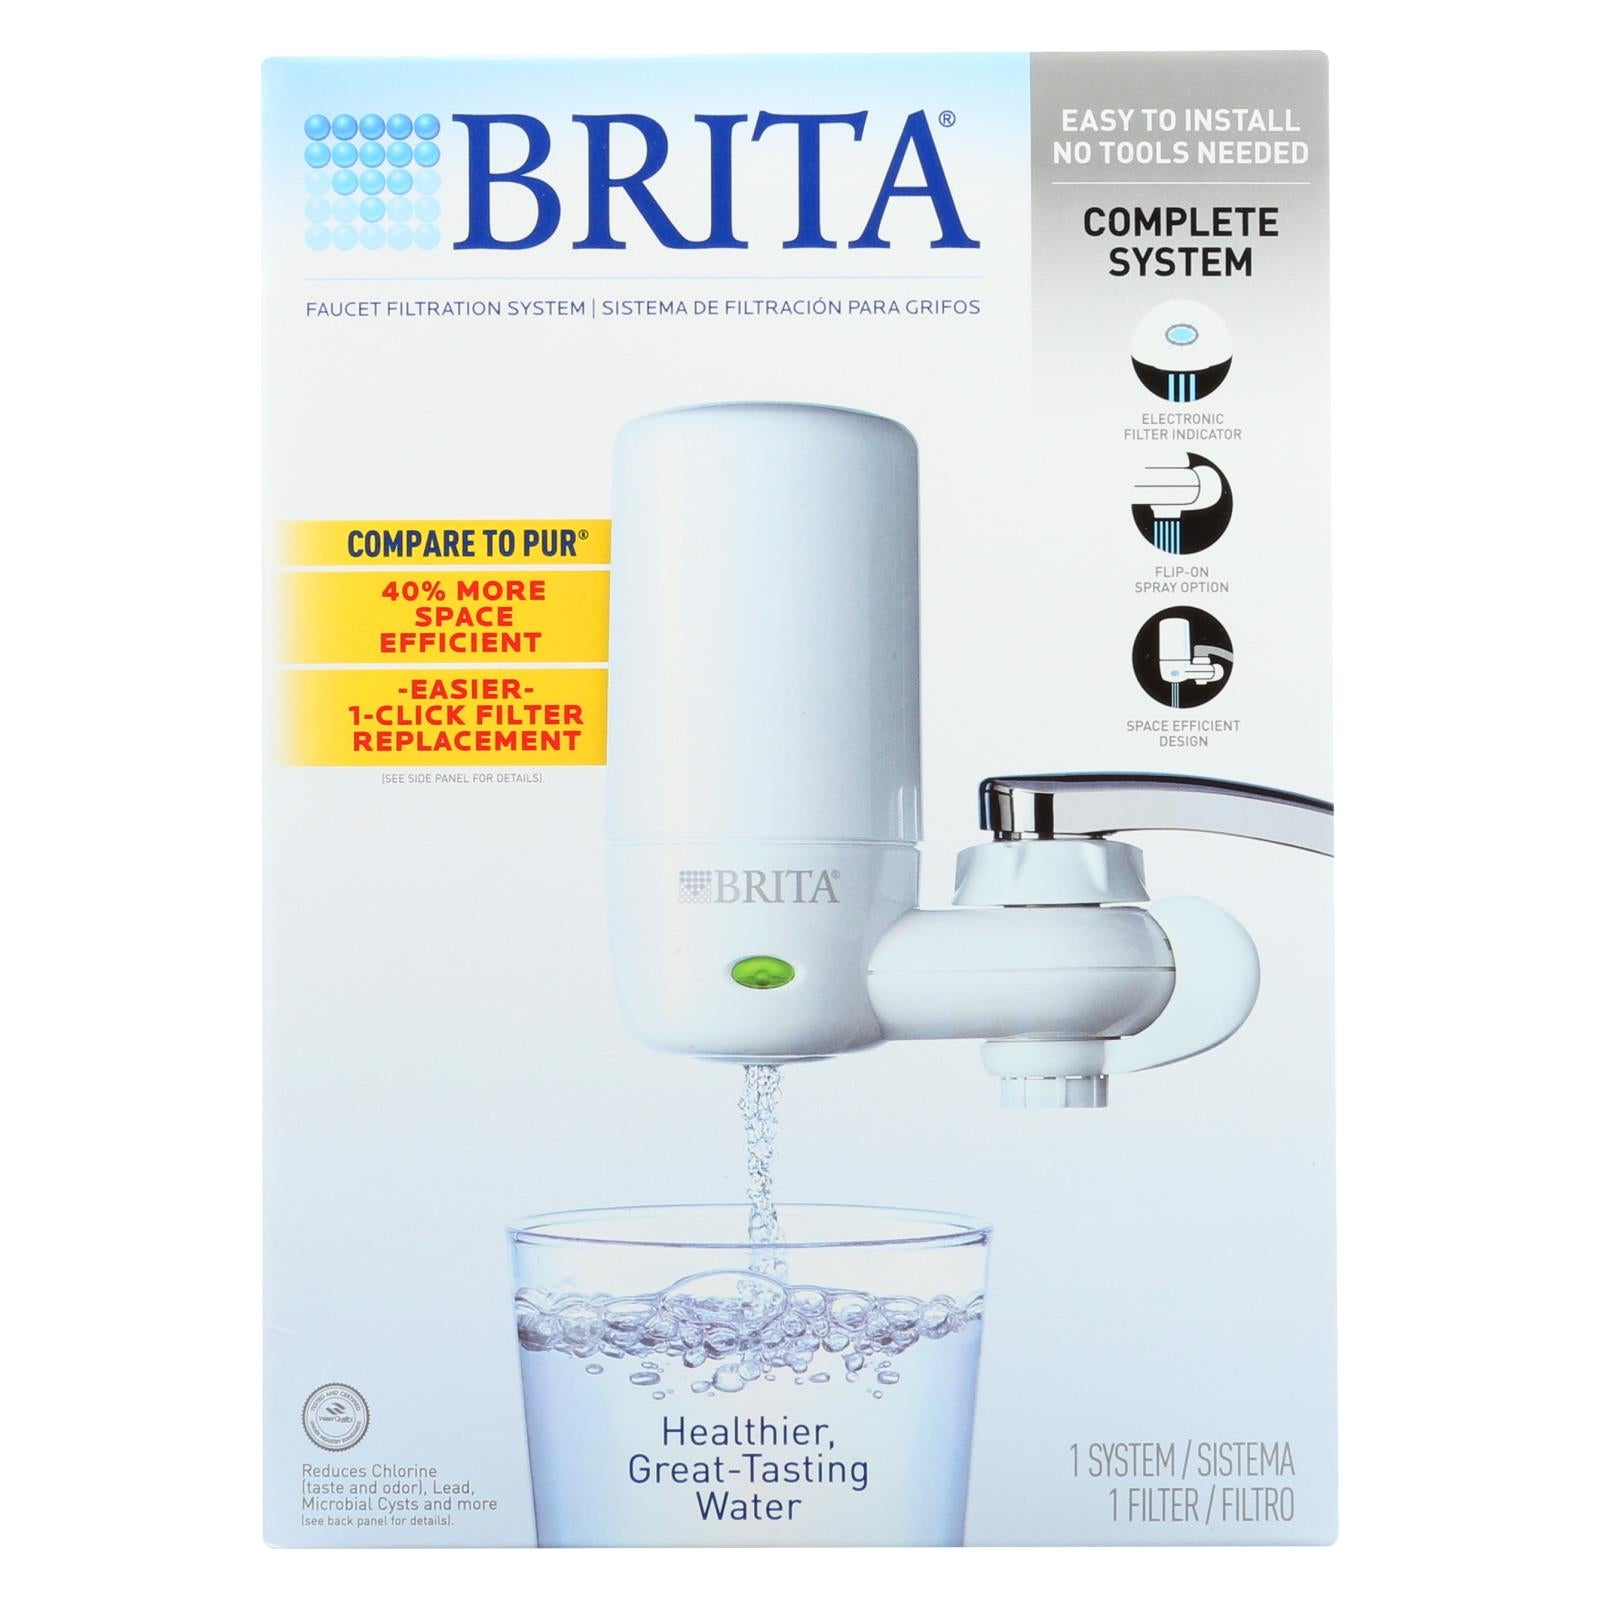 Brita Advanced Faucet Filtration System White 1 Count HG0953083